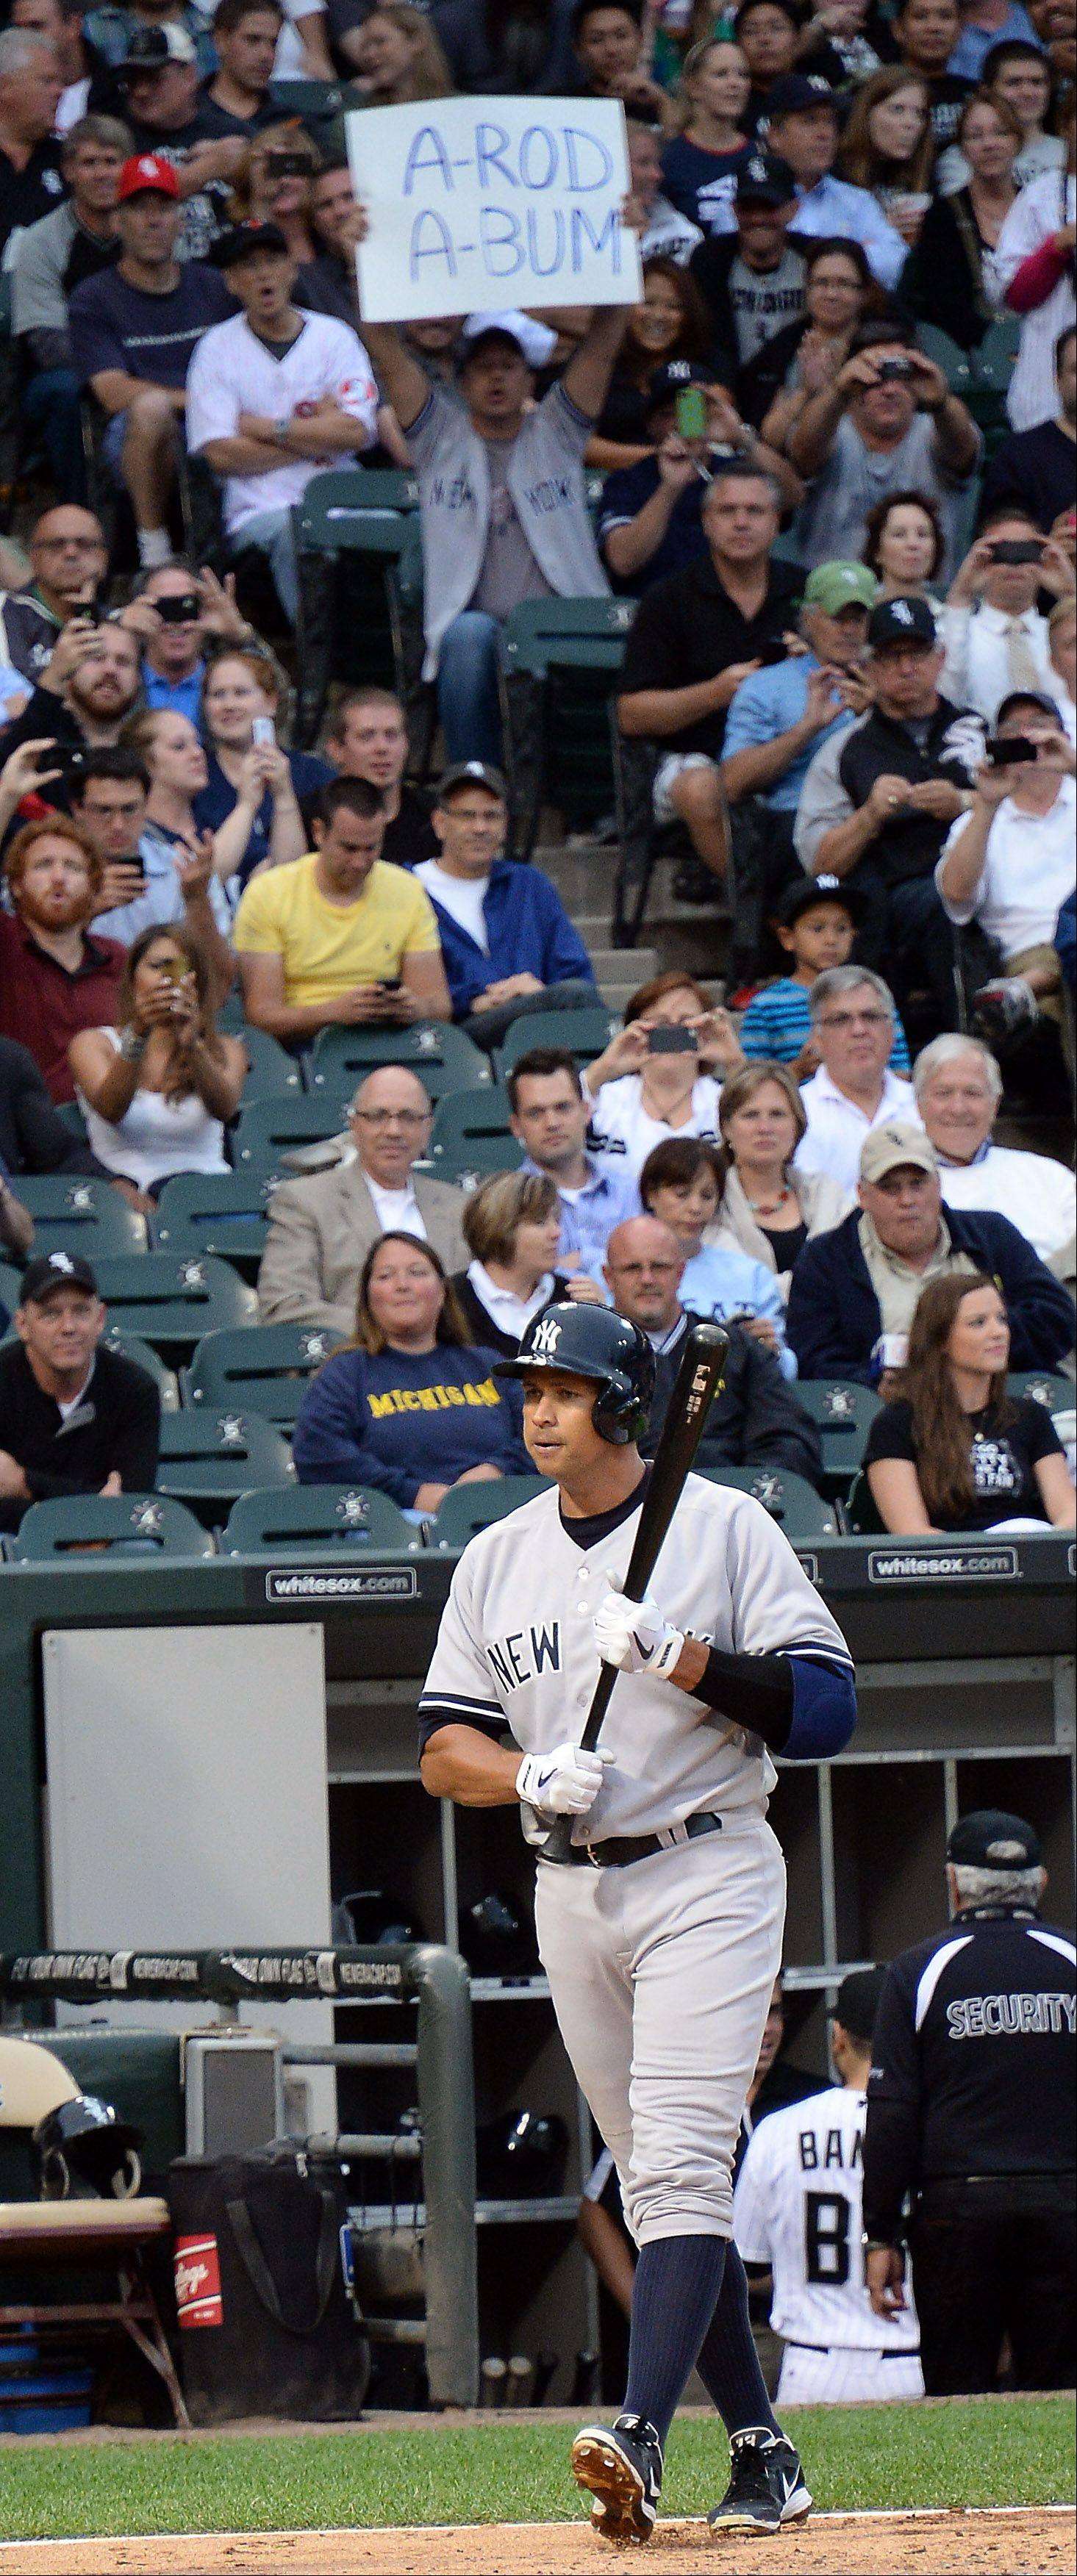 New York Yankees Alex Rodriguez bats during the first inning at Cellular Field in Chicago on Monday as fans express their feelings toward him.